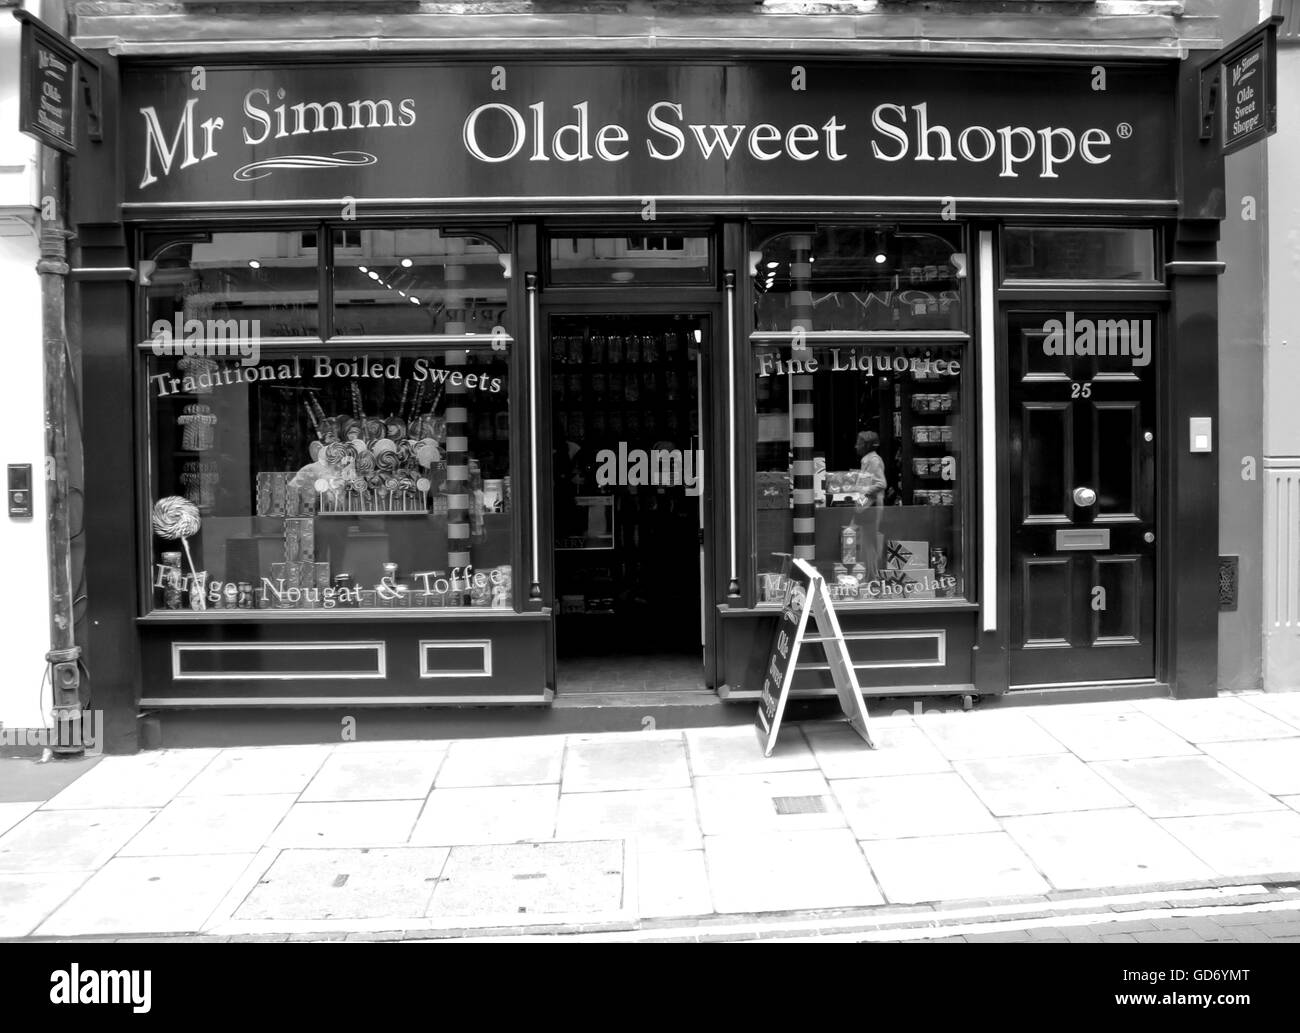 London, Uk - August 17, 2010: outside view of an oldstyle sweet shop in London - Stock Image